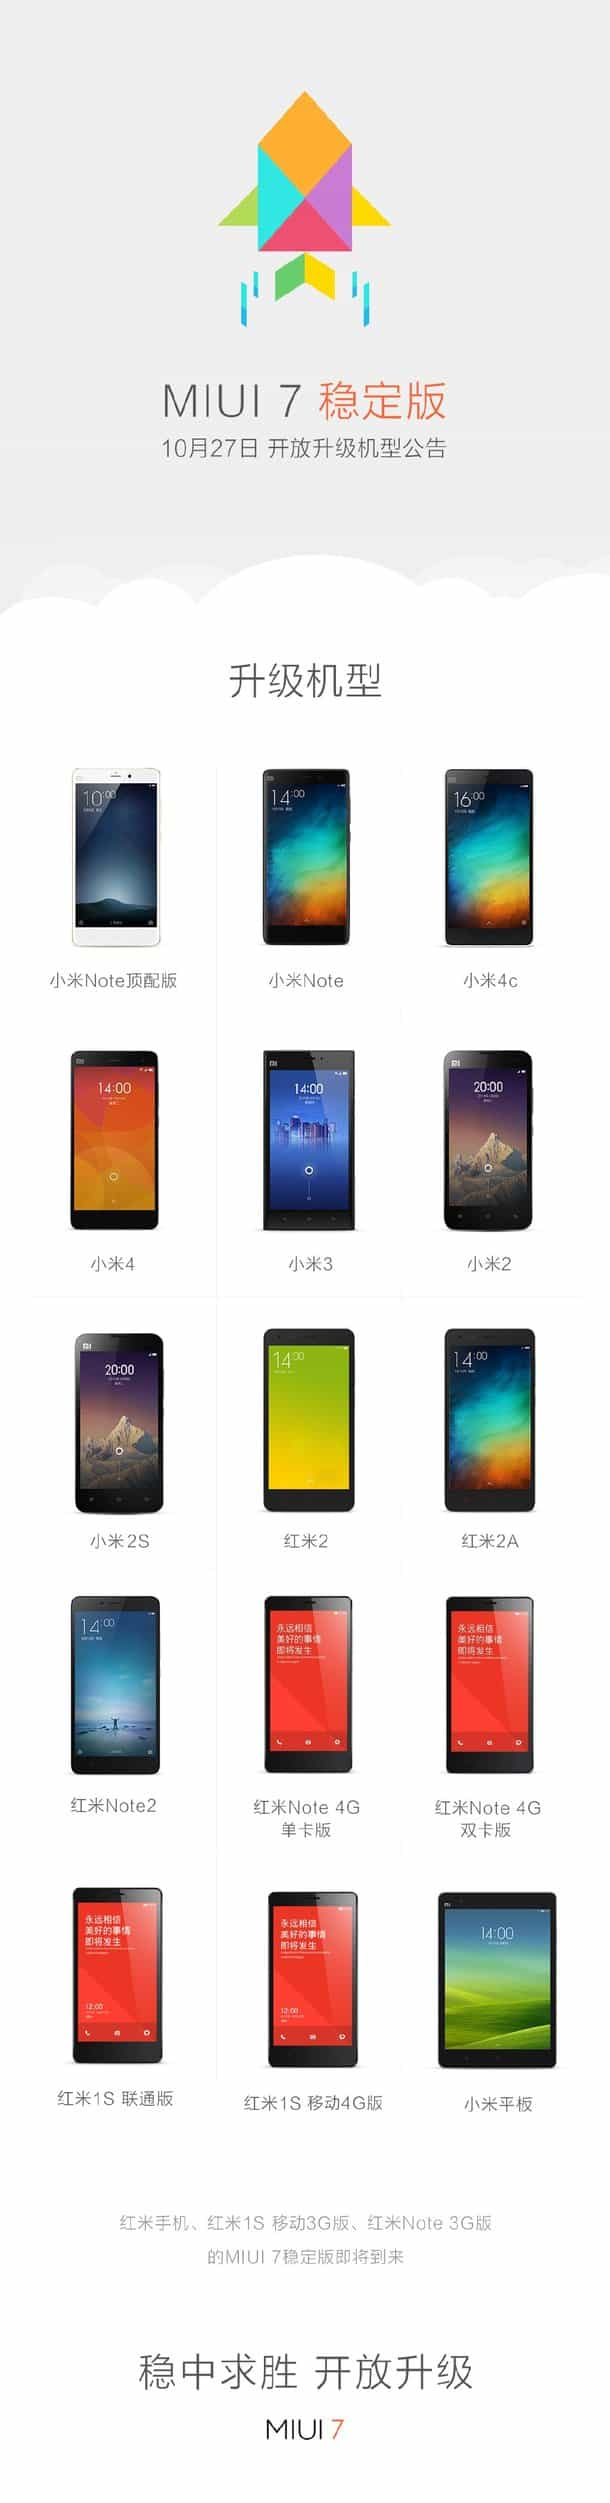 MIUI 7 update device list_1